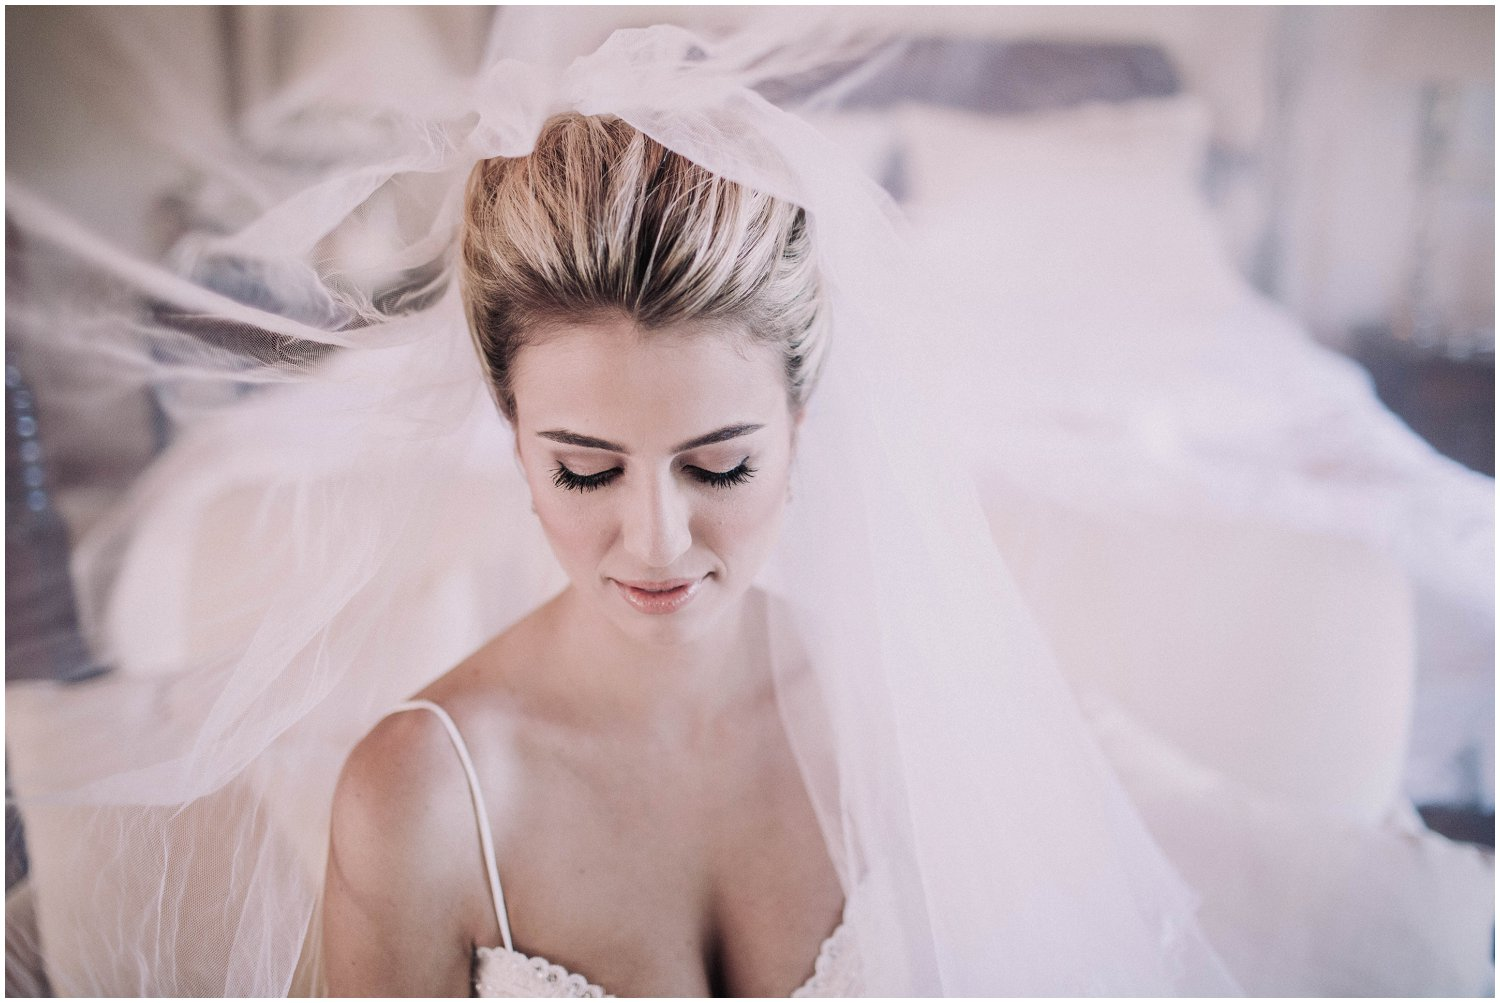 Top Artistic Documentary Wedding Photographer Cape Town South Africa Rue Kruger_0071.jpg